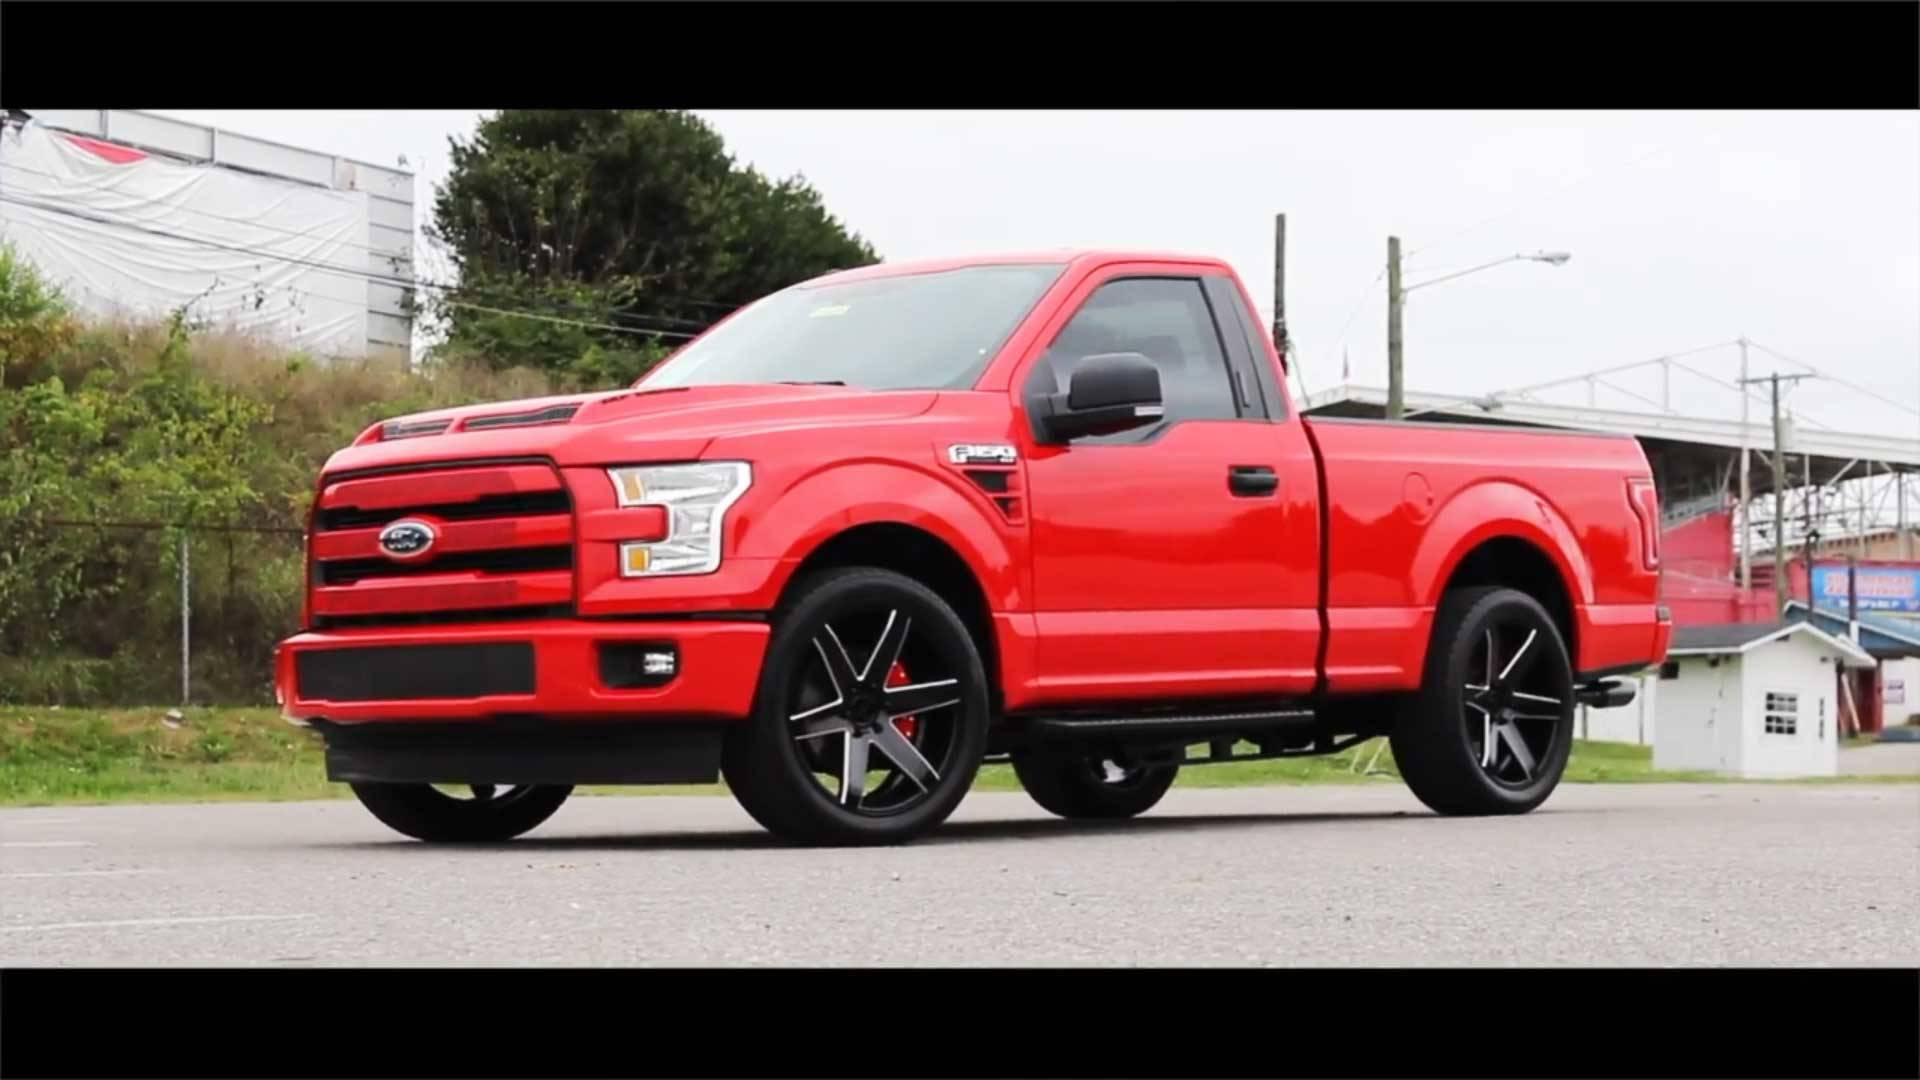 Shelby F150 For Sale >> Ford Dealer Builds 750 HP F-150 With Shelby Bits And A ...